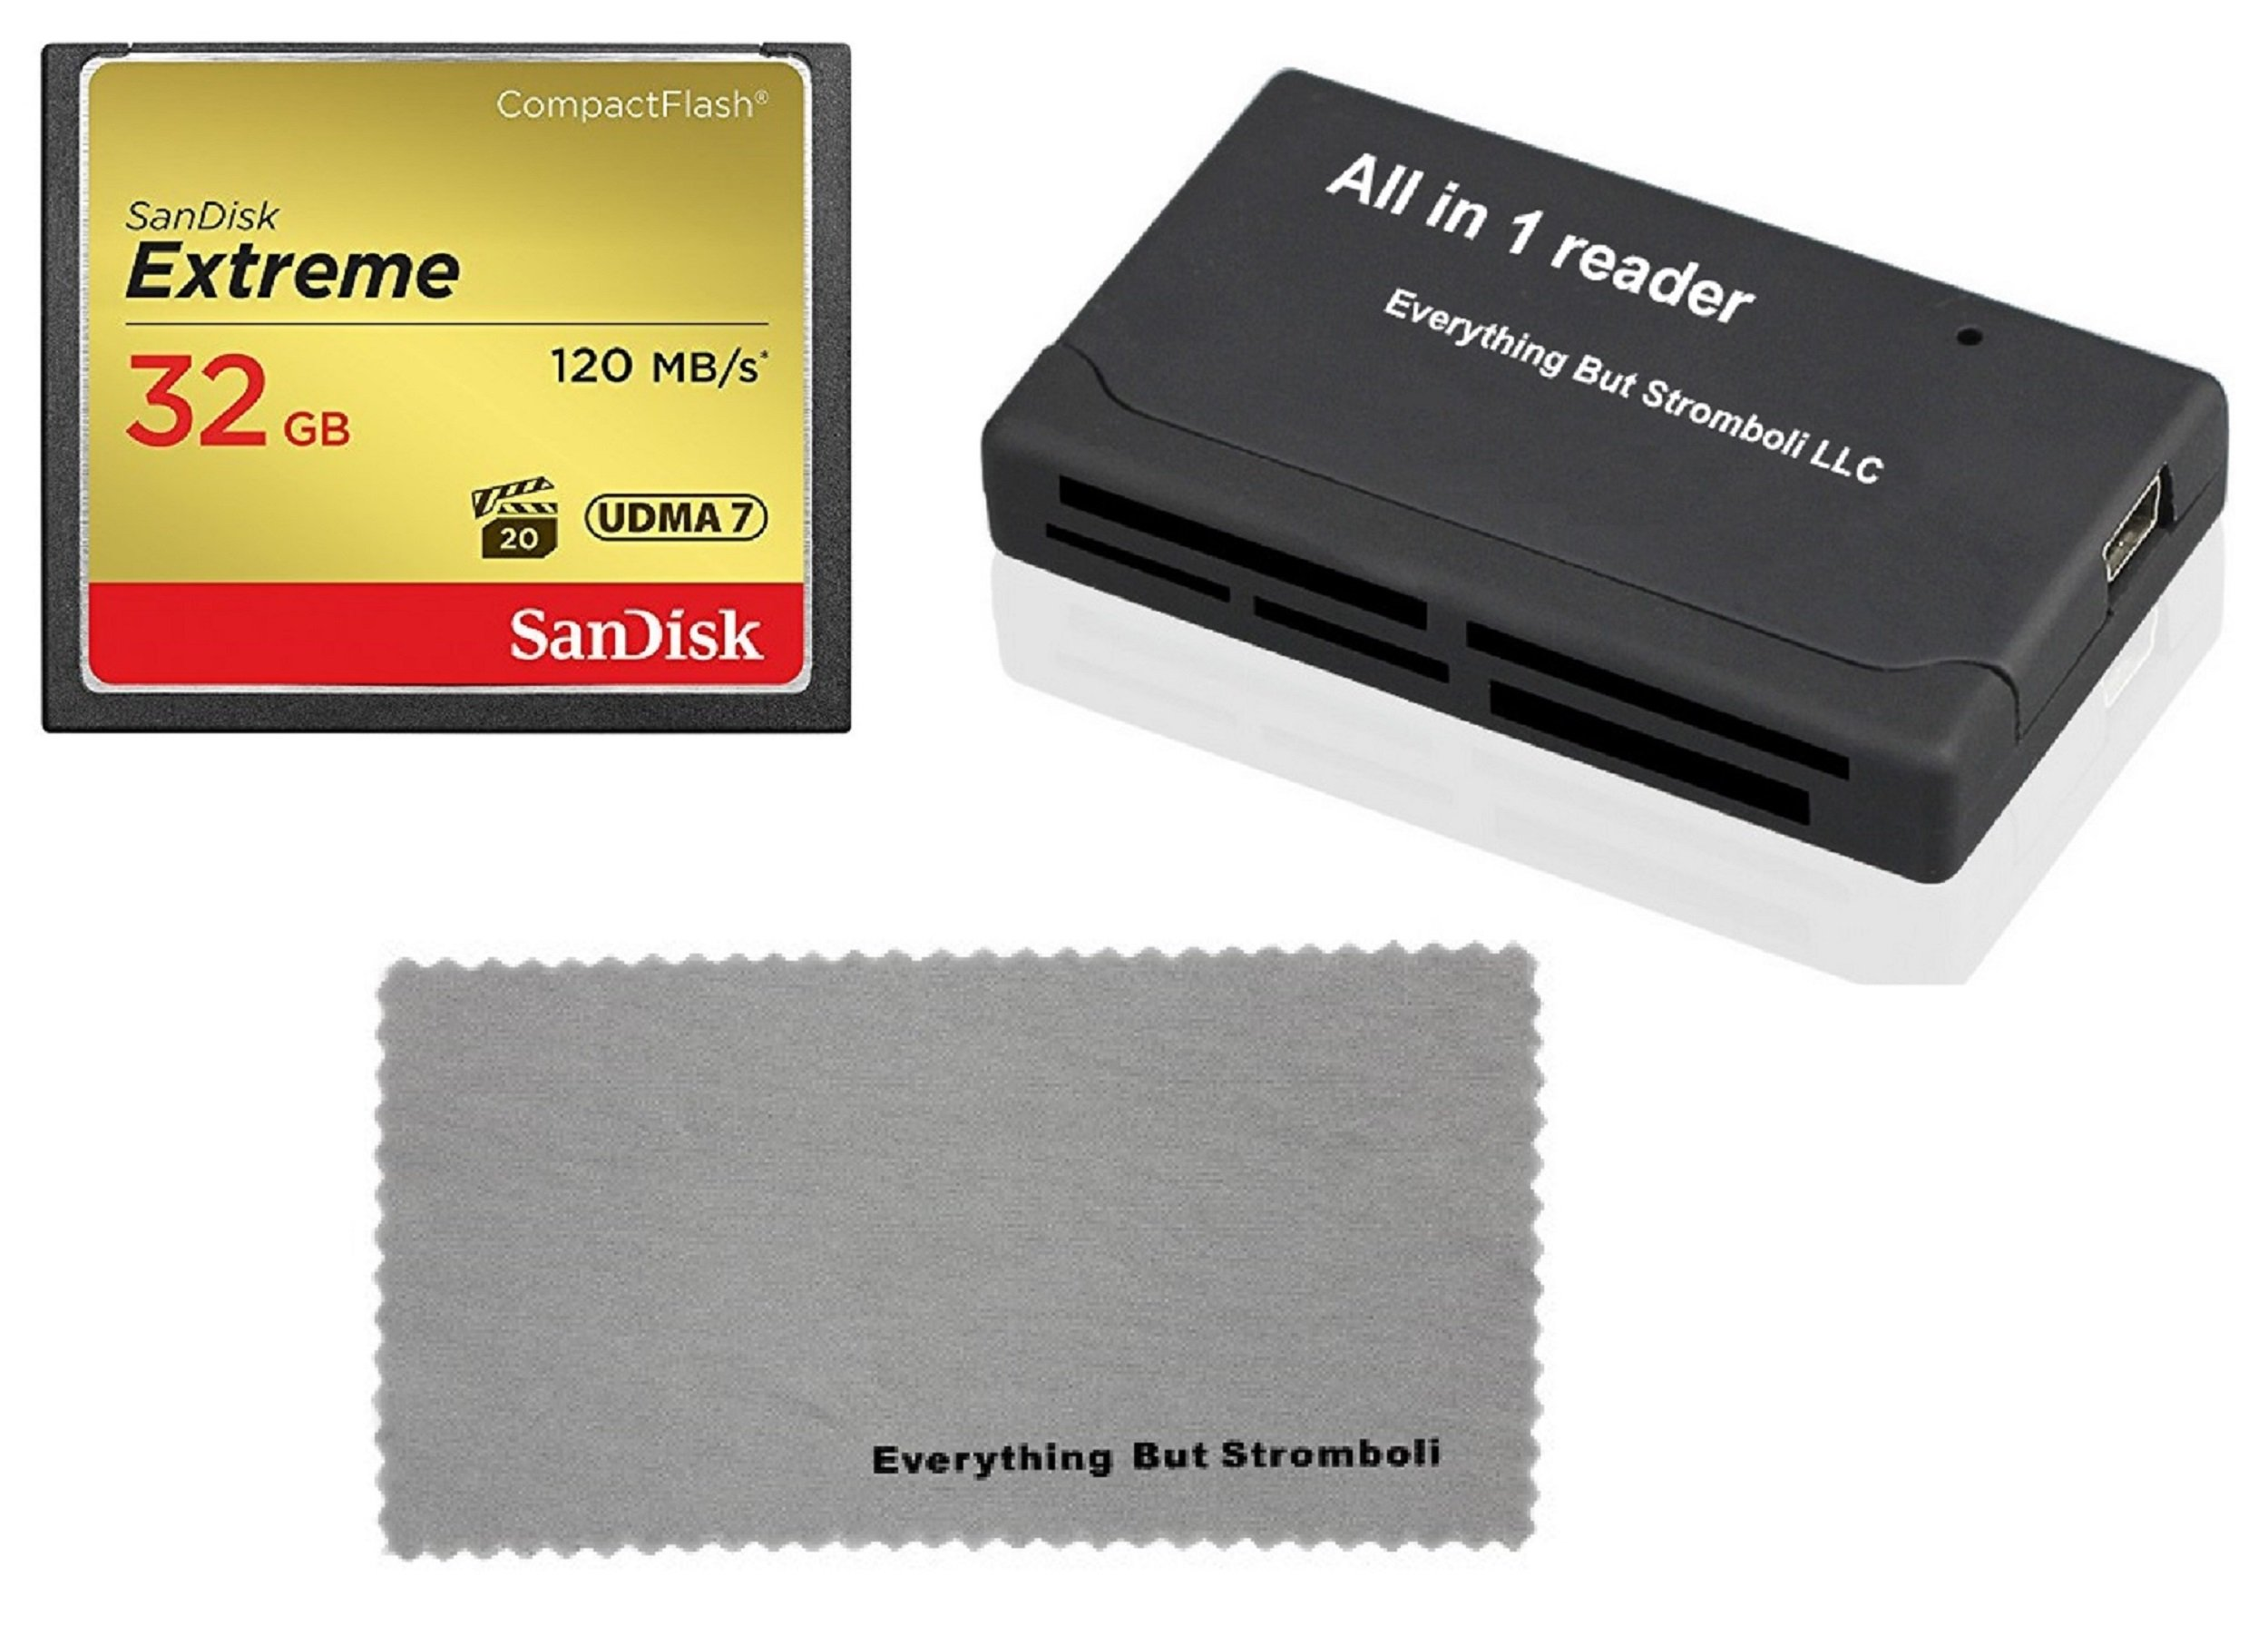 SanDisk Extreme 32GB CompactFlash Memory Card works with Canon EOS 7D Mark II Digital DSLR Camera HD UDMA 7 (SDCFXSB… 1 Bundle includes (x1) 32GB CF Extreme SanDisk, (x1) Everything But Stromboli Microfiber Cloth, (x1) Combo Memory Card Reader (Color May Vary) - Includes CF, SD, Micro SD, M2, and MS, MSPD slots for easy transfer Compatible with Canon EOS 7D Mark II Digital DSLR Camera Professional-Grade Video Capture - VPG-20 ensures sustained data recording rate of 20MB/s for a smooth and unbroken video stream